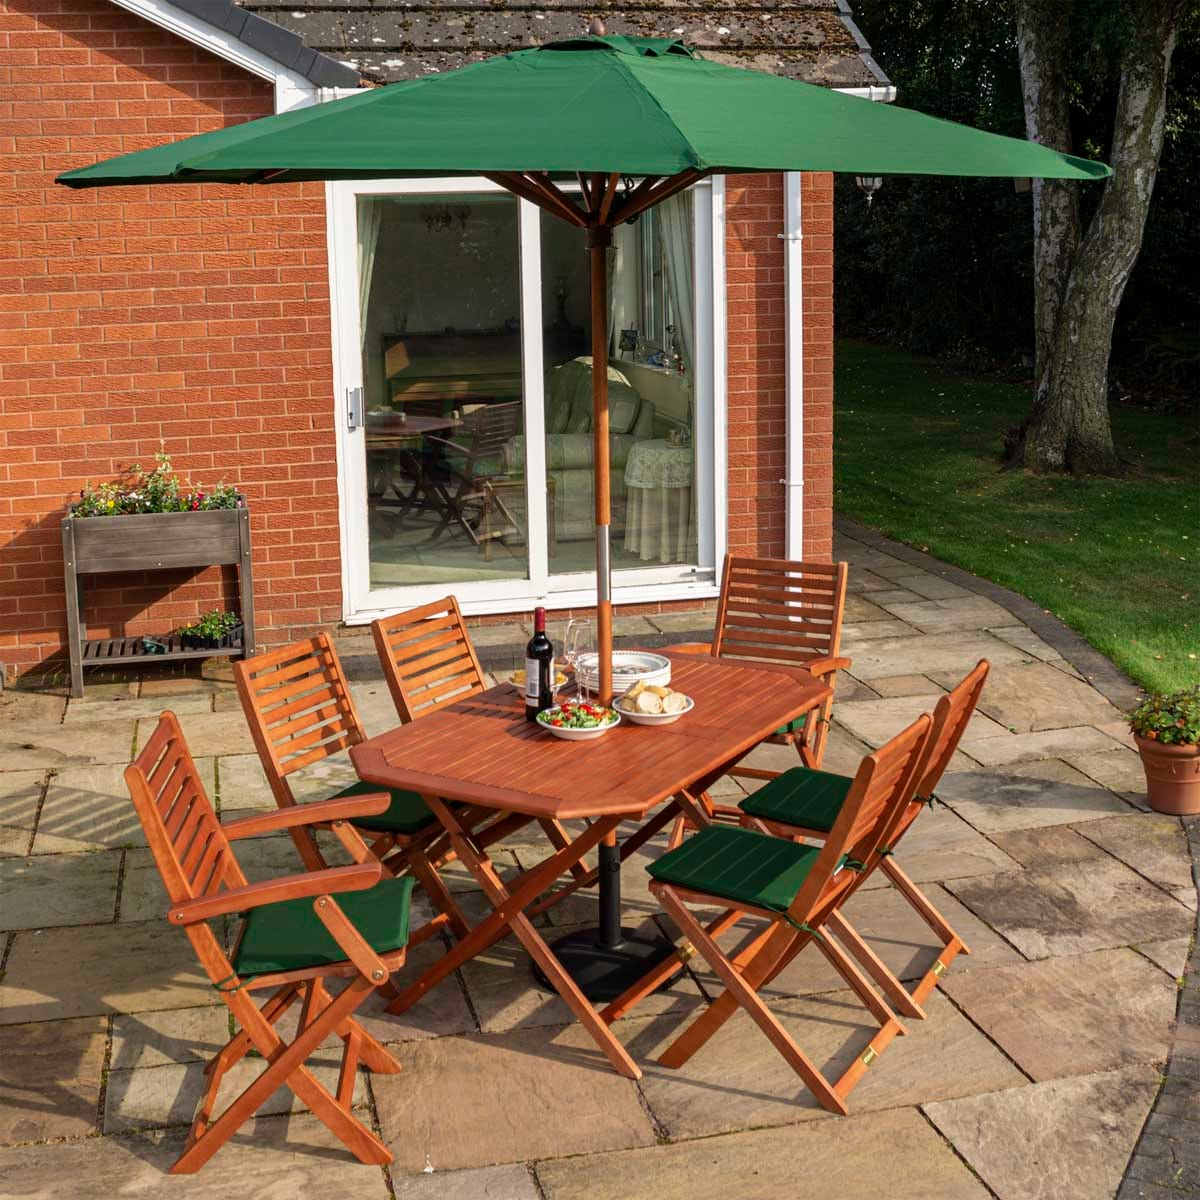 Rowlinson Plumley Set with Green Cushions, Green Parasol and 15Kg Base